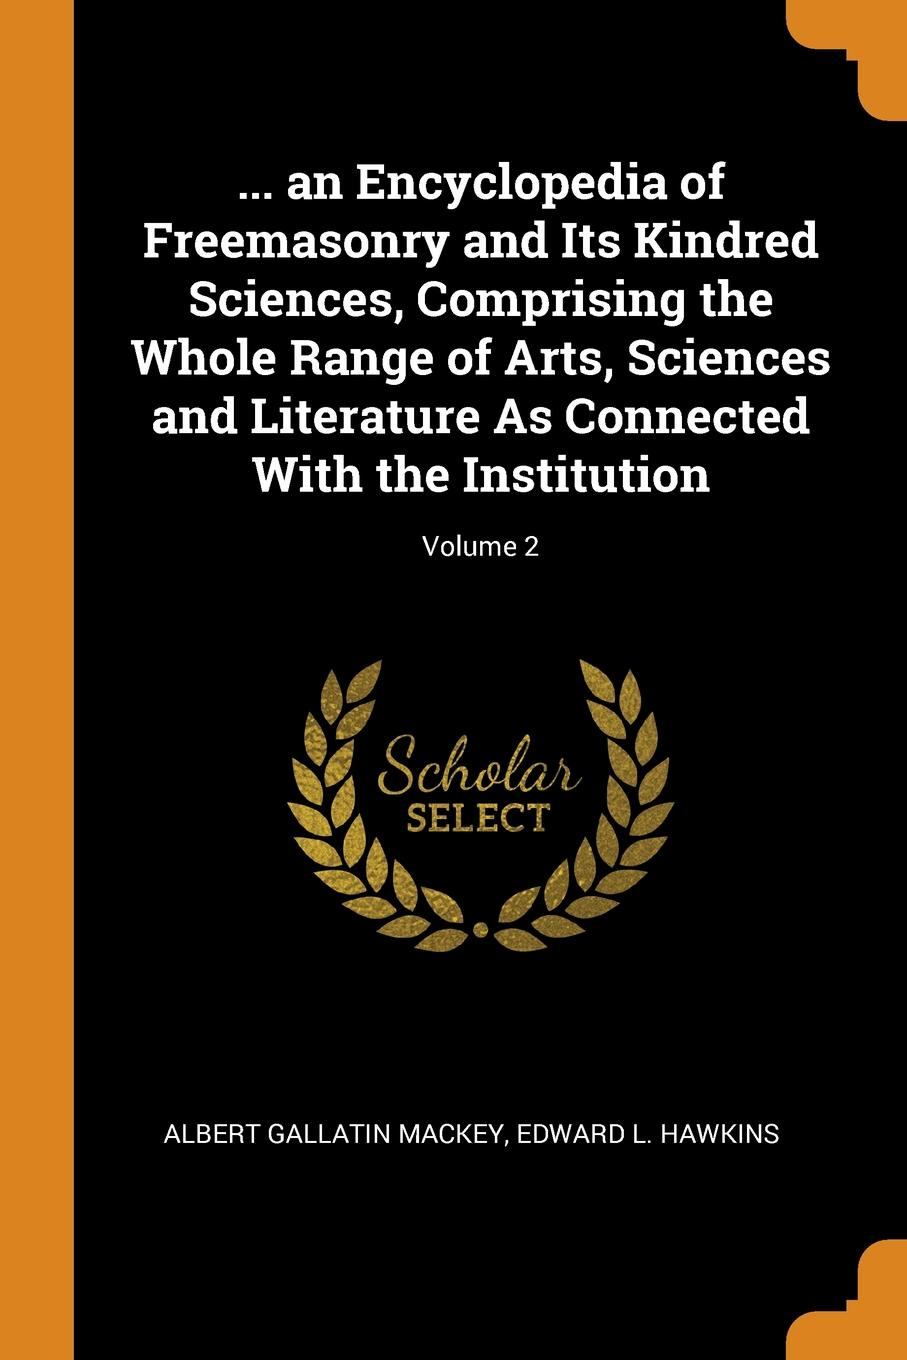 Книга ... an Encyclopedia of Freemasonry and Its Kindred Sciences, Comprising the Whole Range of Arts, Sciences and Literature As Connected With the Institution; Volume 2. Albert Gallatin Mackey, Edward L. Hawkins